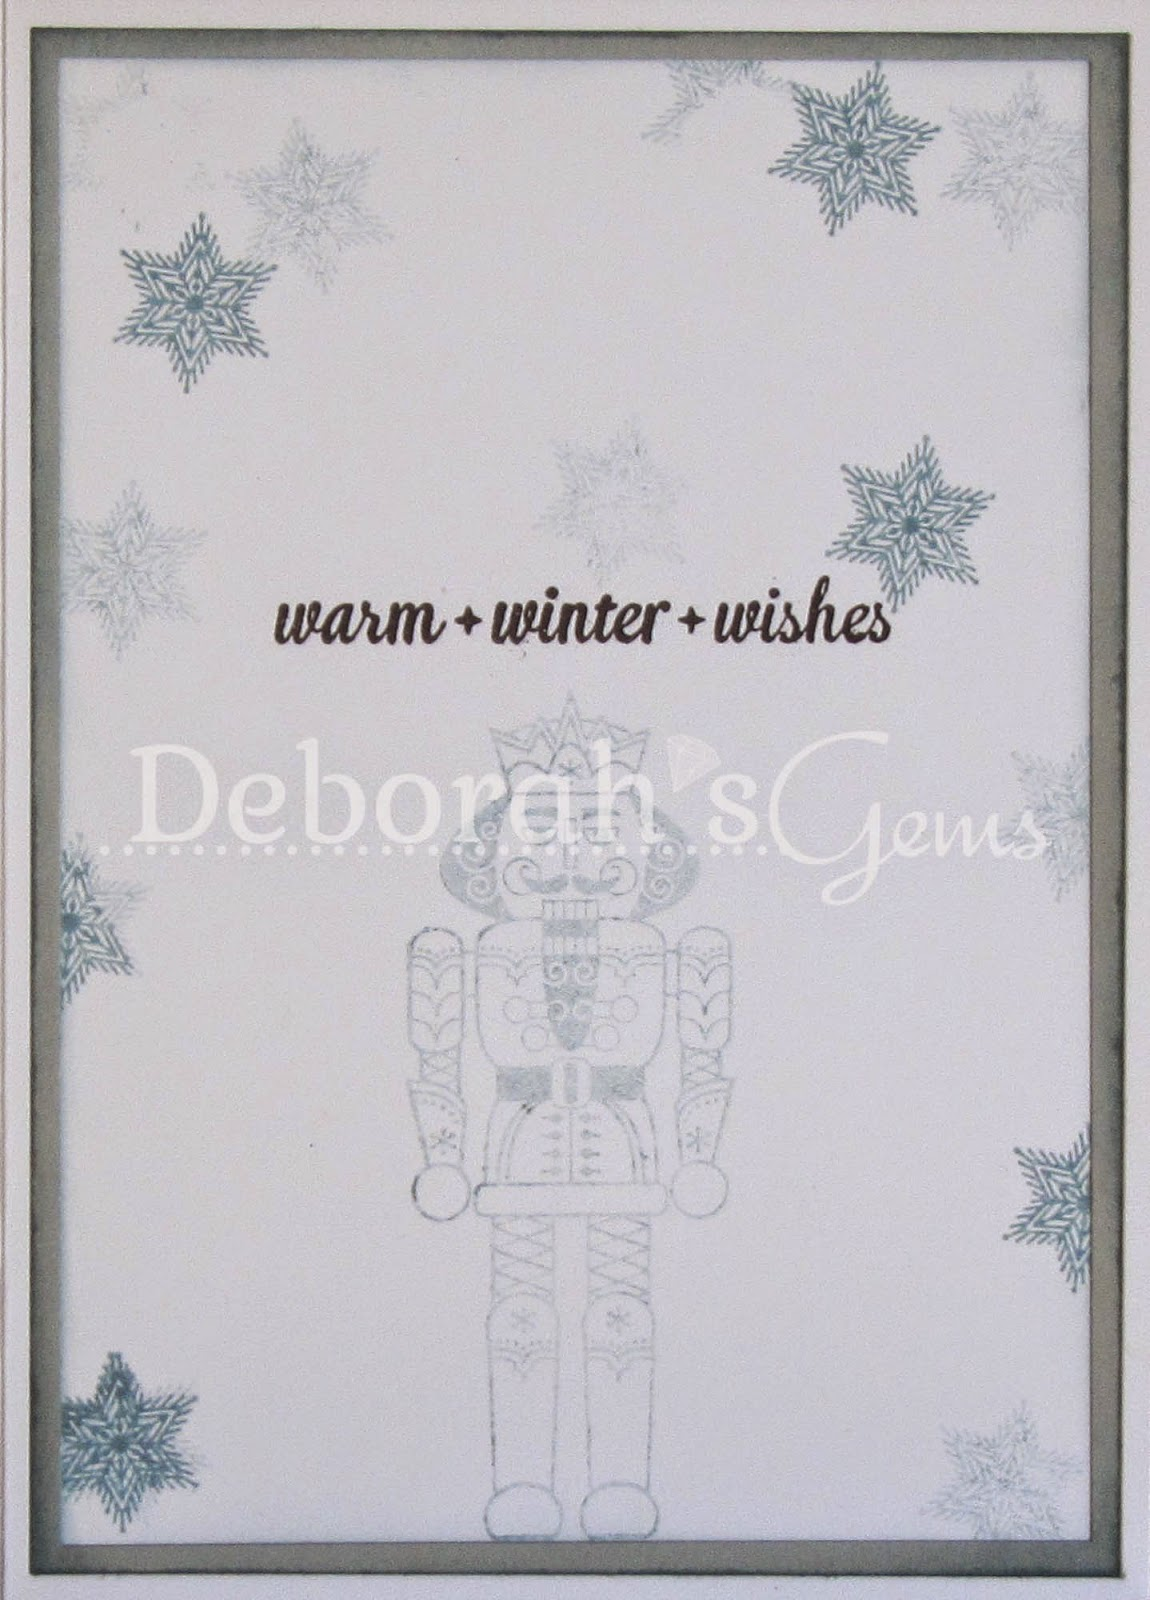 Seaon's Greetings inside - photo by Deborah Frings - Deborah's Gems